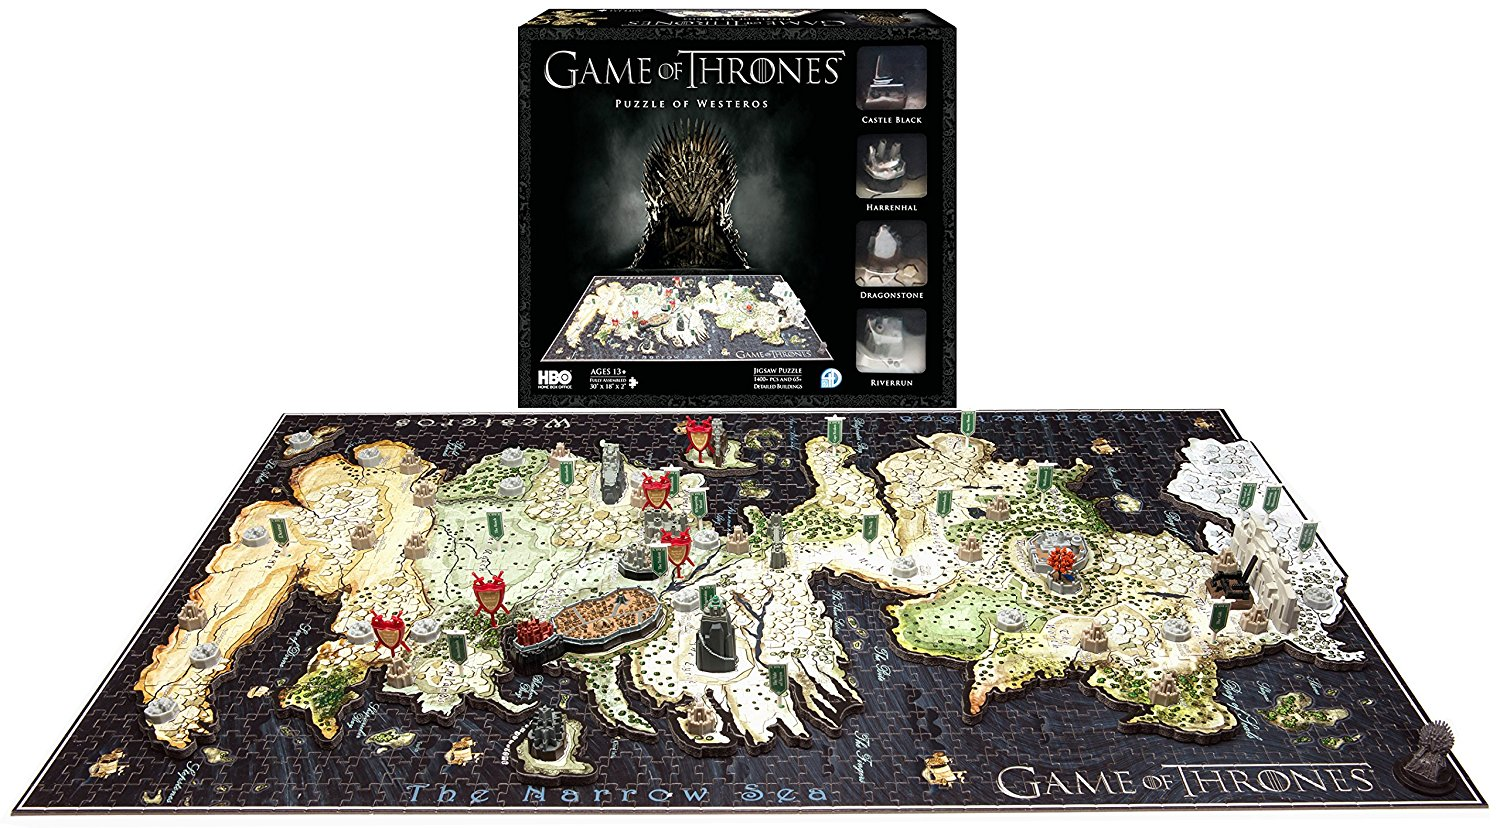 Game of Thrones 3D Puzzle of WESTEROS Toys 1400+ pcs game of thrones